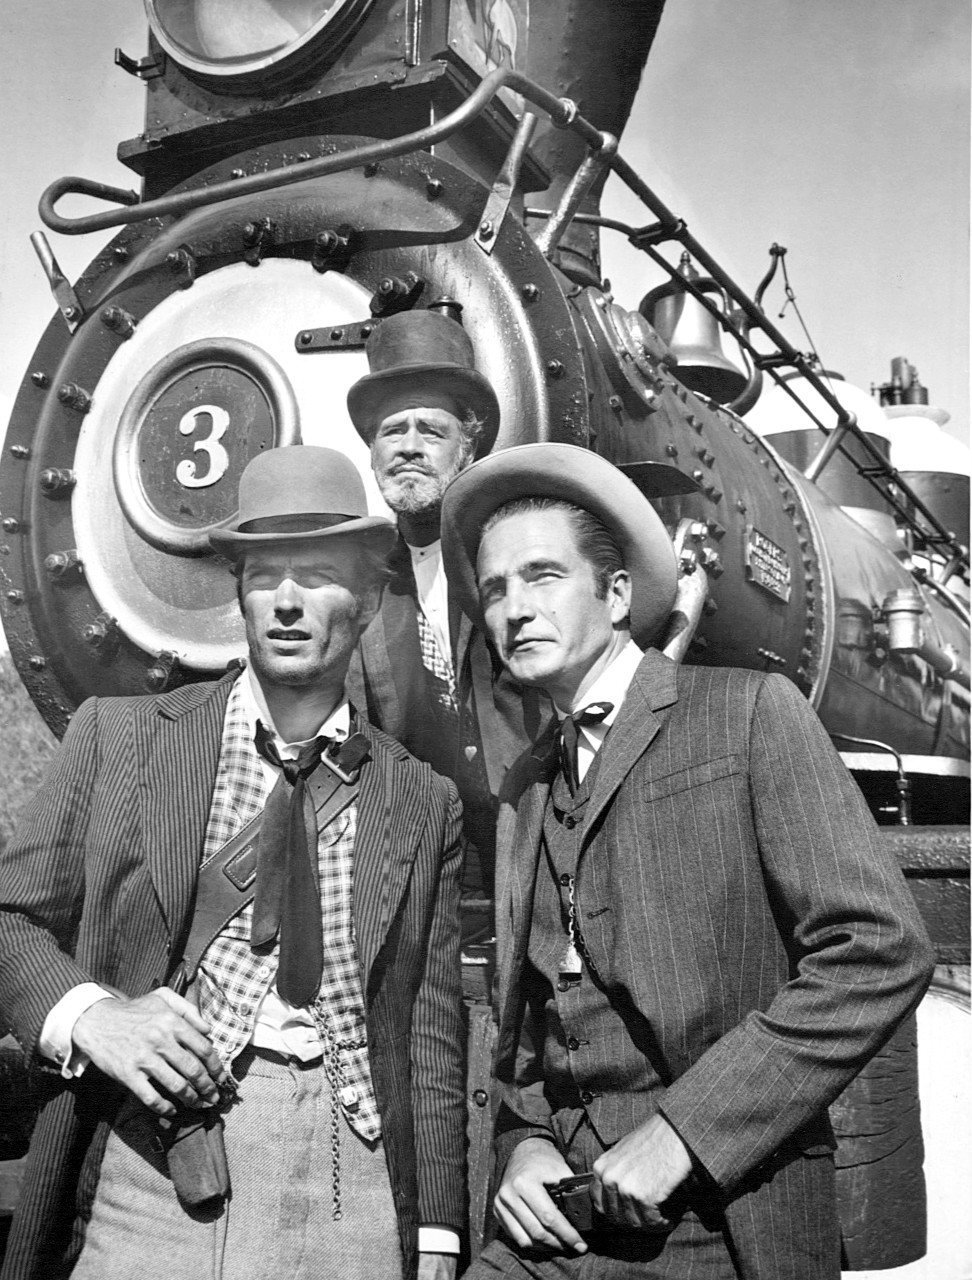 """Photo of Clint Eastwood, Paul Brinegar, and Eric Fleming from the television program """"Rawhide,"""" circa 1950s. 